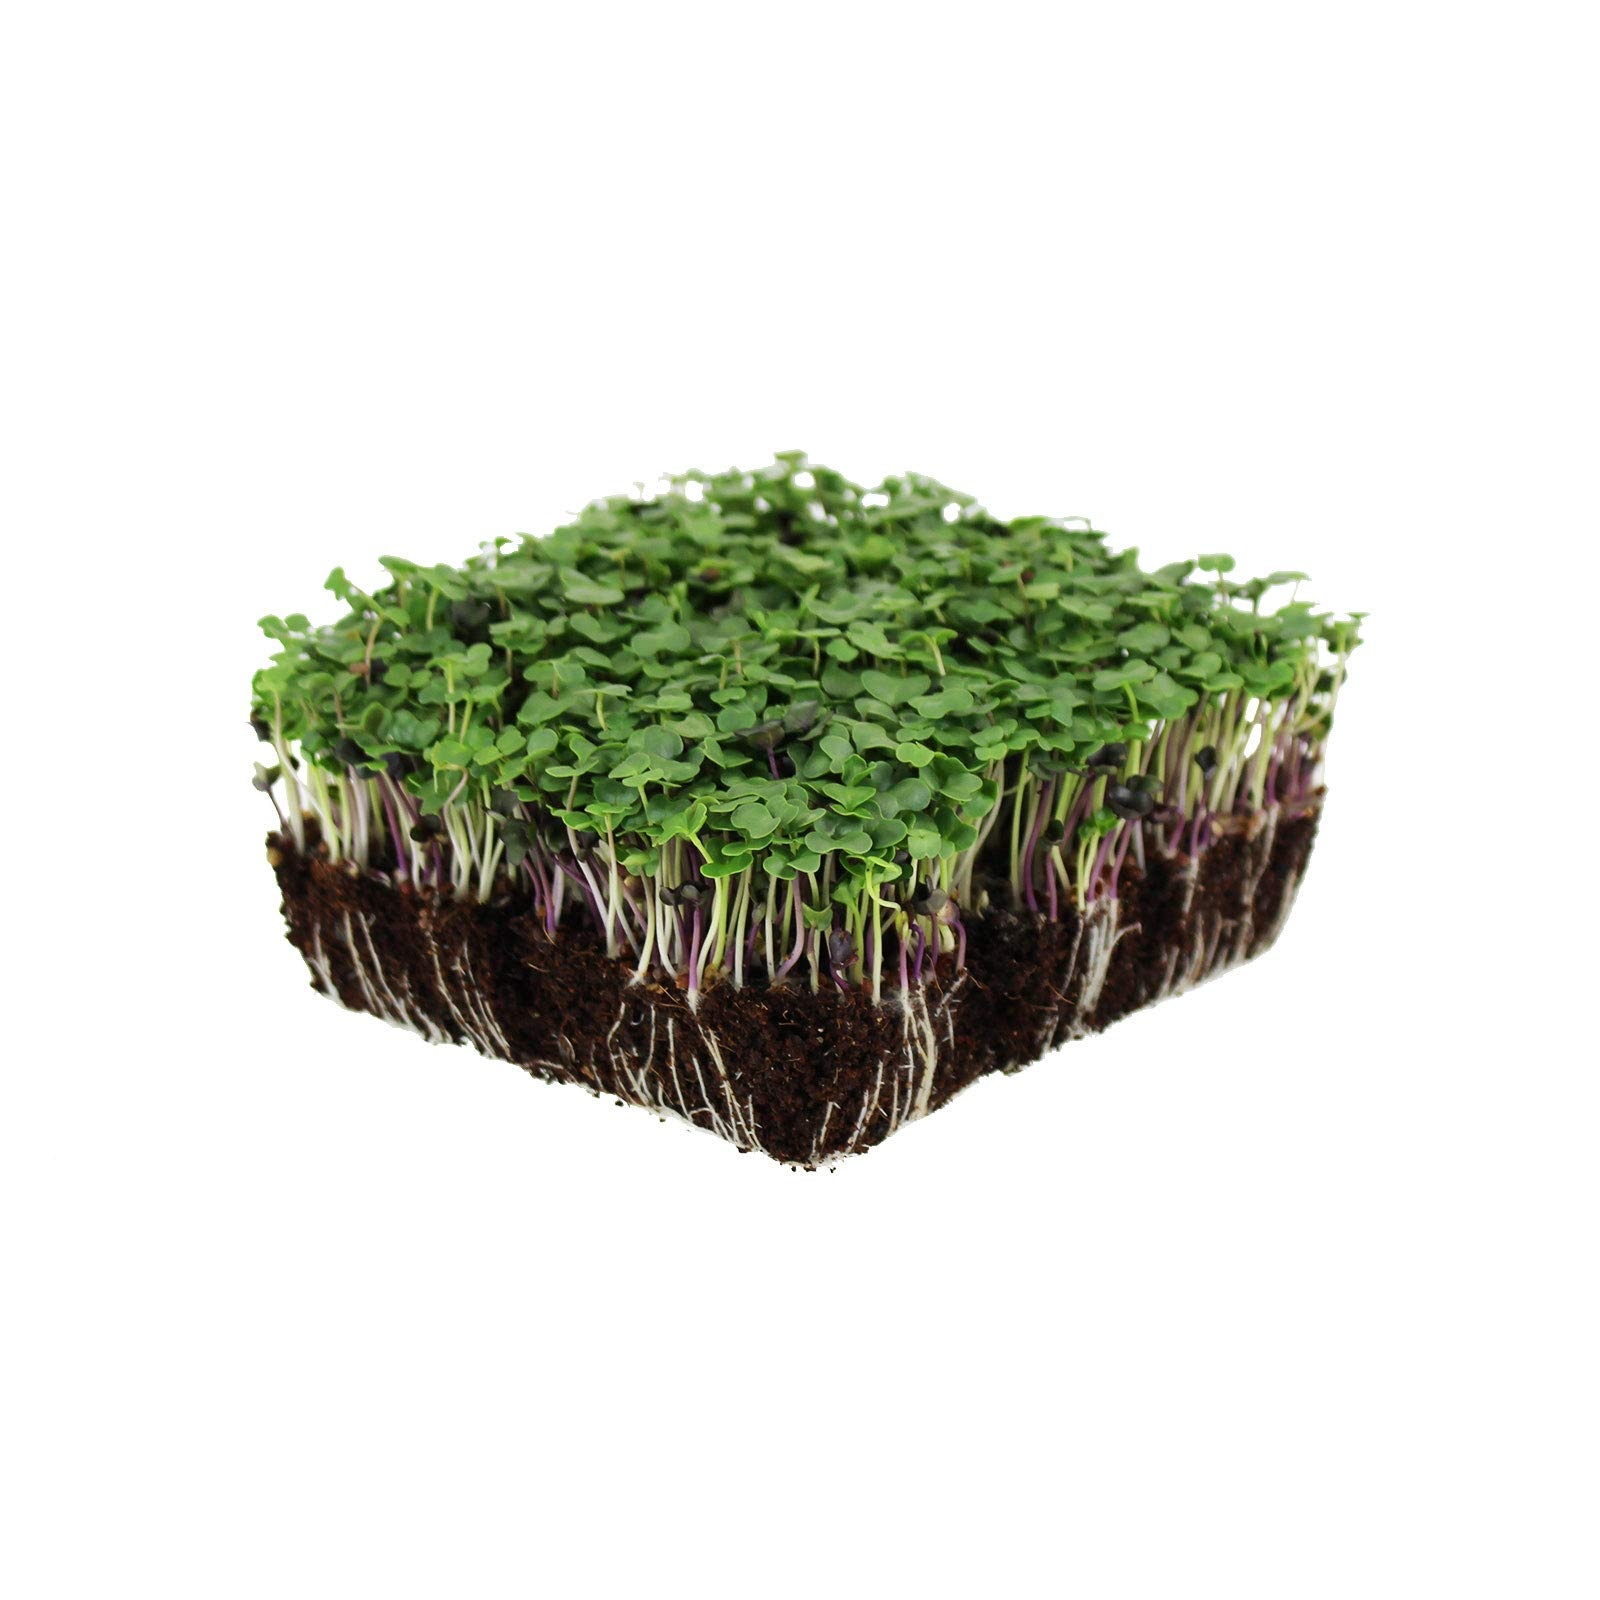 Basic Salad Mix Micro Greens Seeds: 25 Lb - Bulk Non-GMO Seed Blend: Broccoli, Kale, Kohlrabi, Cabbage, Arugula, More